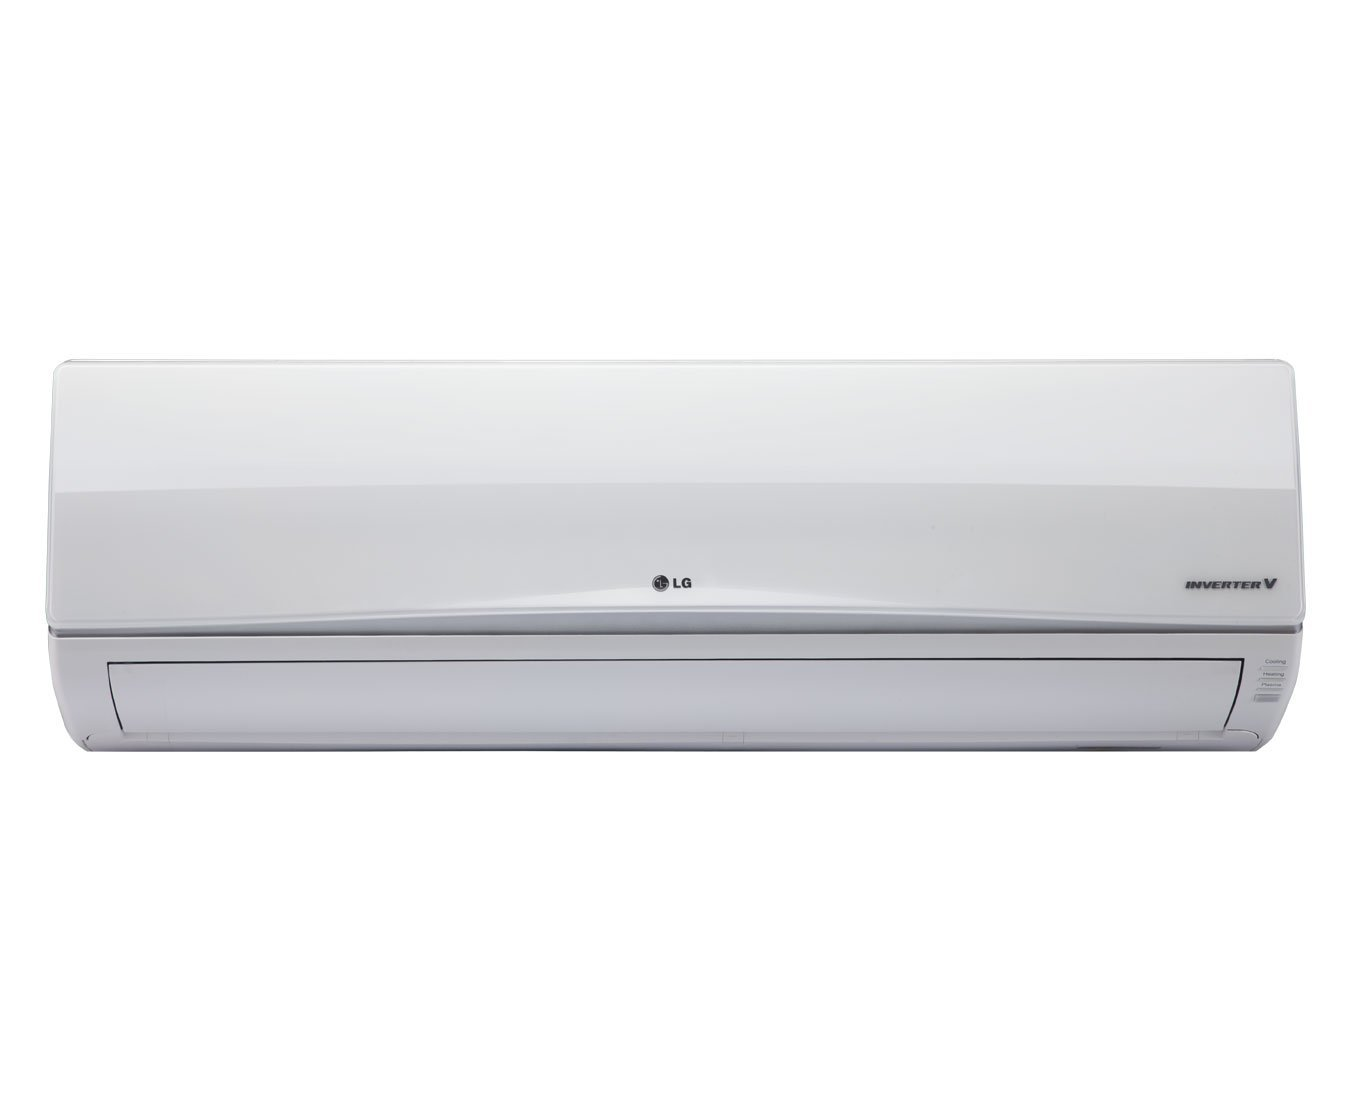 lg window ac dealers in dumka jharkhand address contact number 5f626c